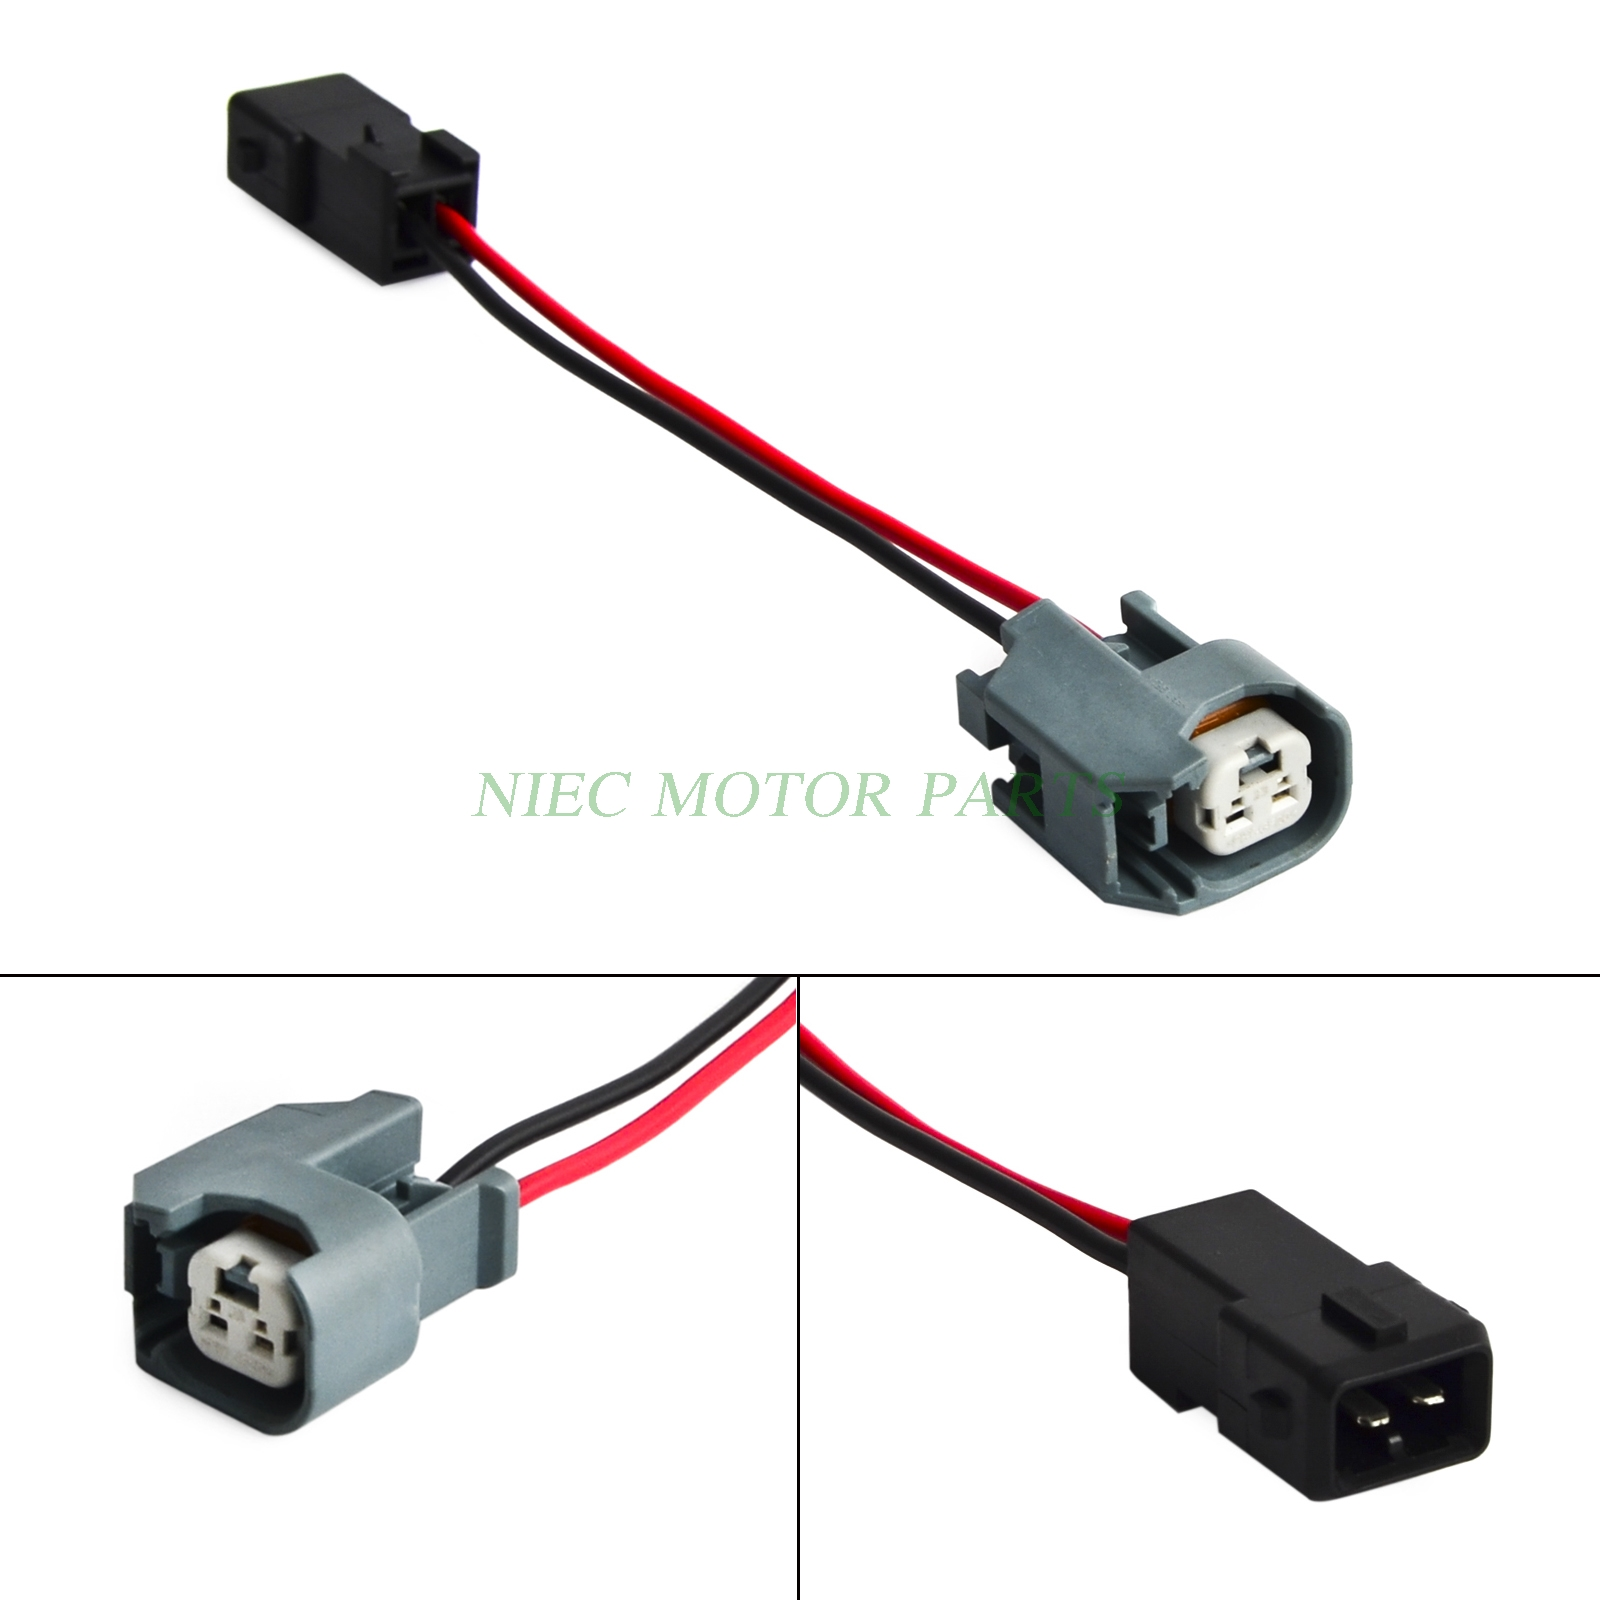 Engine Fuel Injector Wire Harness Connectors Adapter For 8 Ls1 Ls6 Lt1 Ev1 Engine With Ls2  Ls3